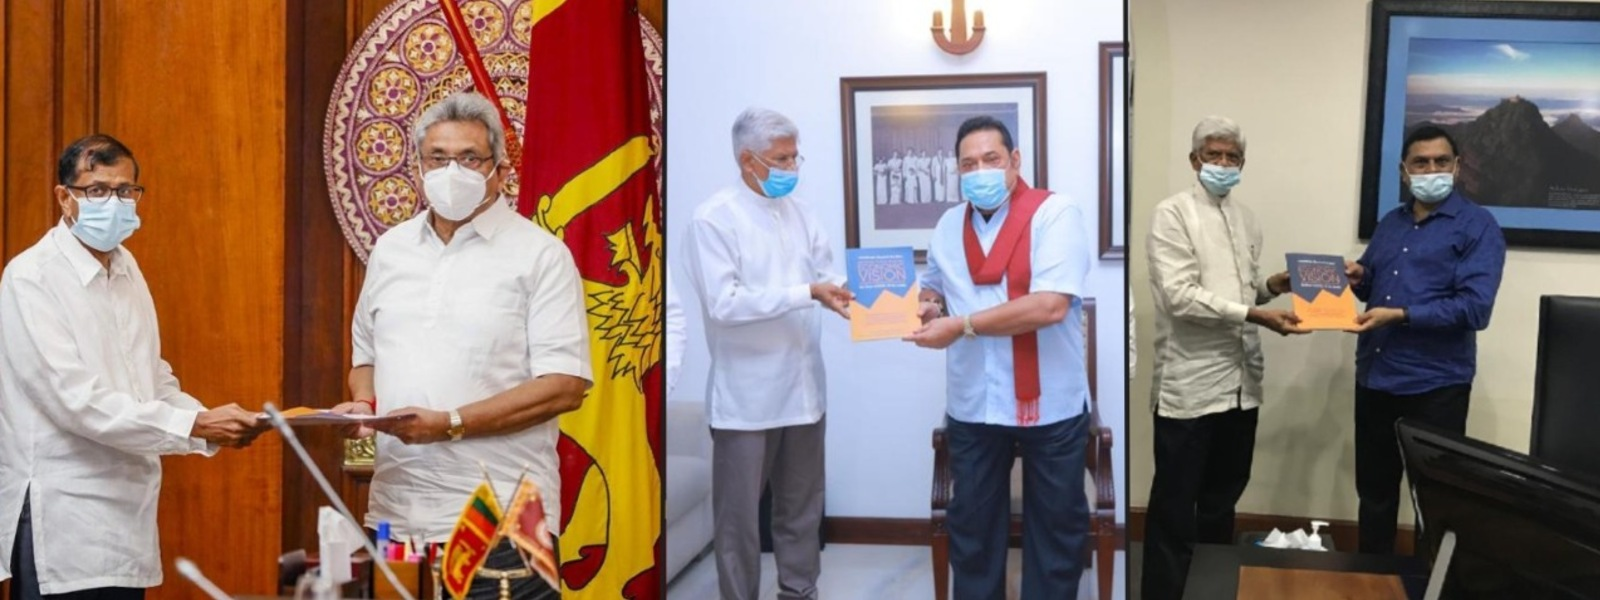 Go 'Beyond the Box', Pathfinder suggests to the President, PM and Basil Rajapaksa